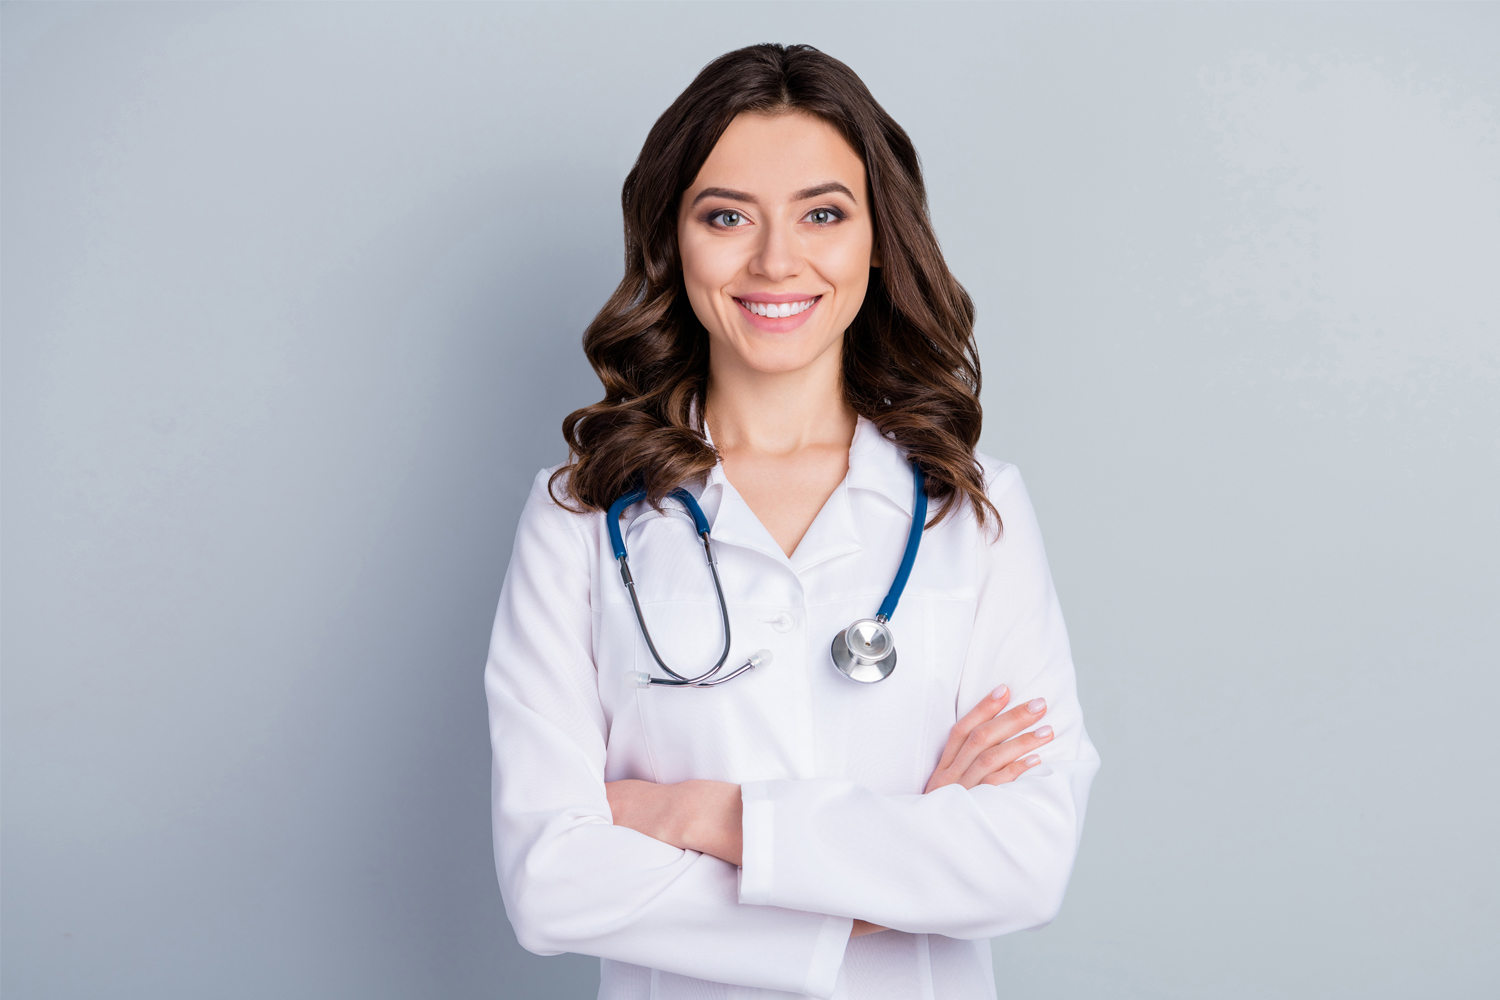 SHOULD I OPT FOR MBBS ABROAD OR DROP FOR ONE YEAR???